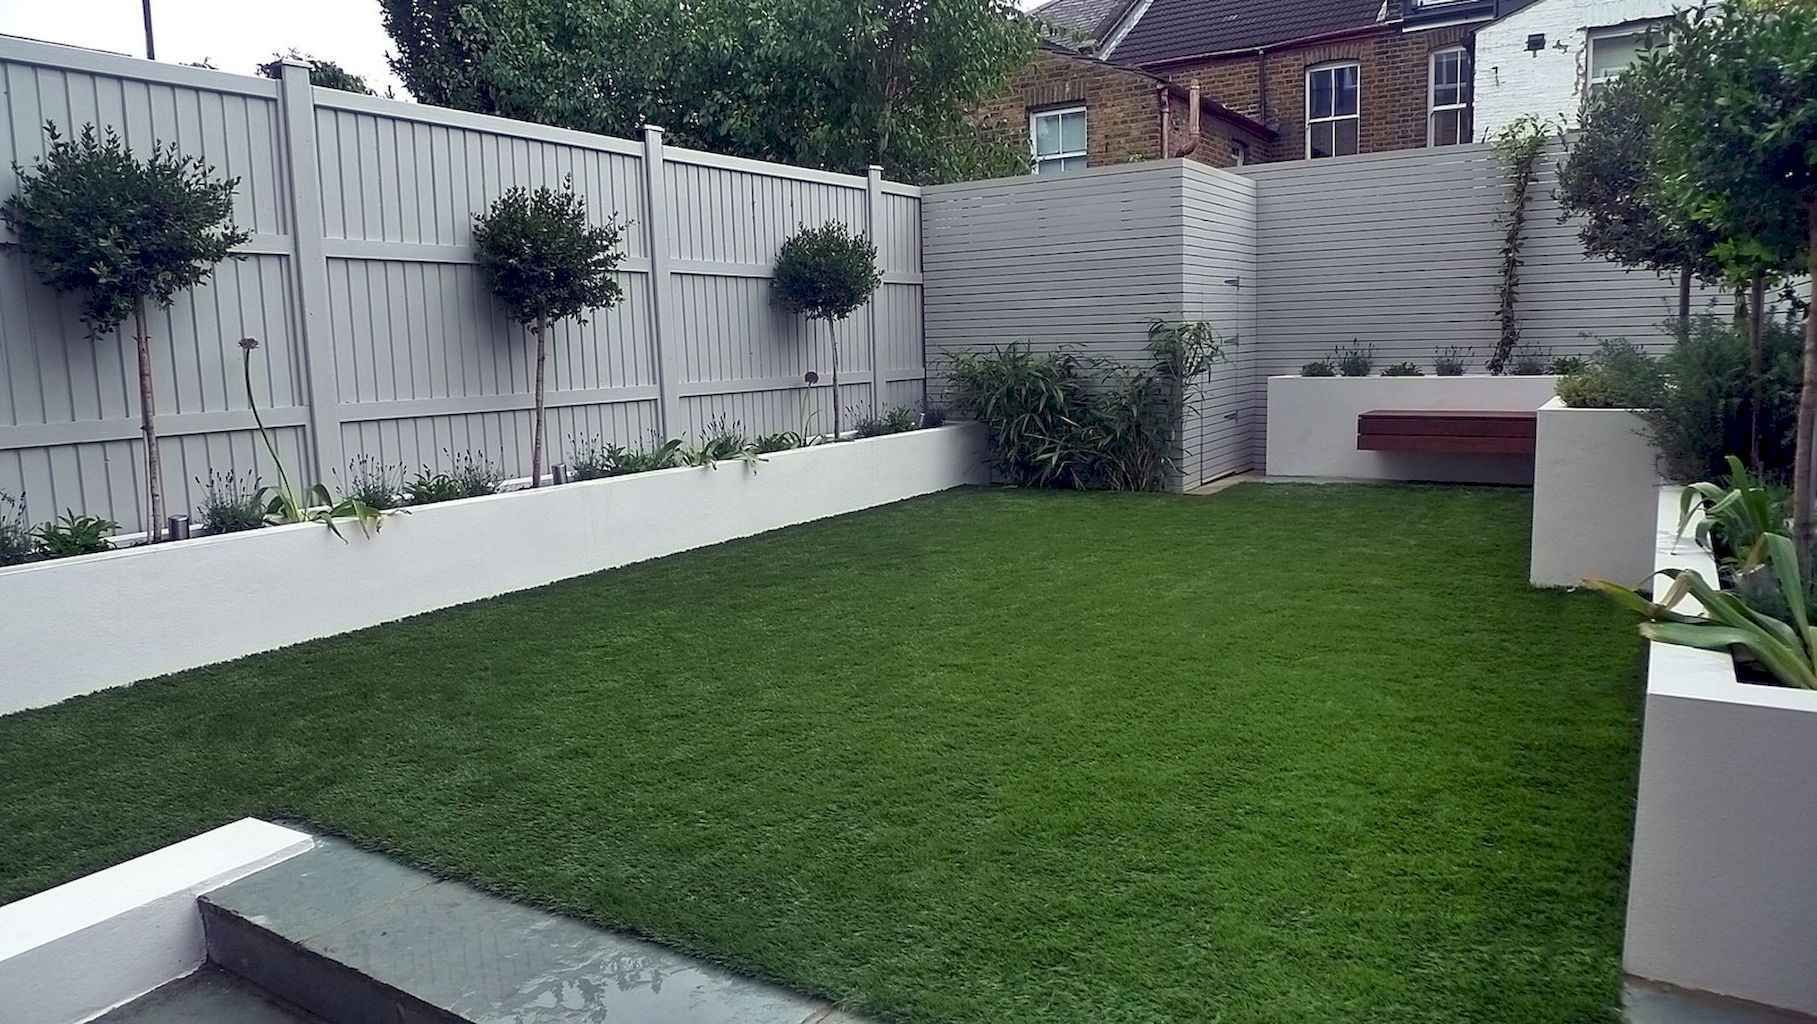 70 Awesome Small Garden Landscaping Ideas Homekover Garden Design Ideas Uk Modern Garden Design Garden Fence Paint